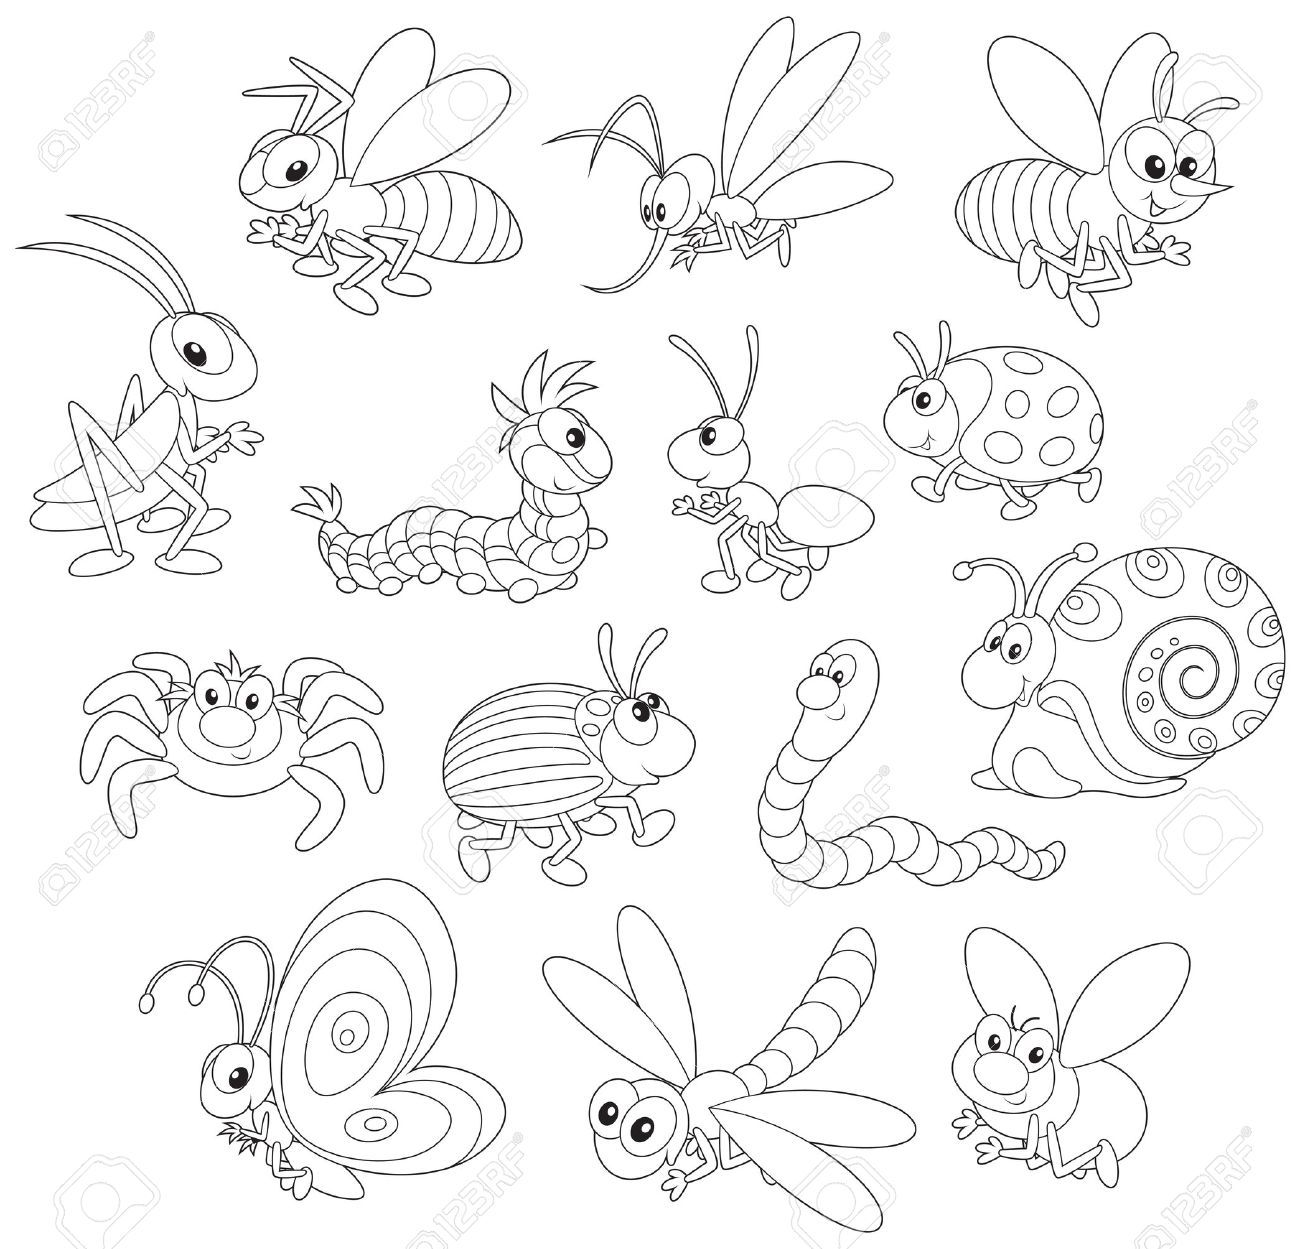 Insects Insect Art Projects Outline Illustration Insect Art